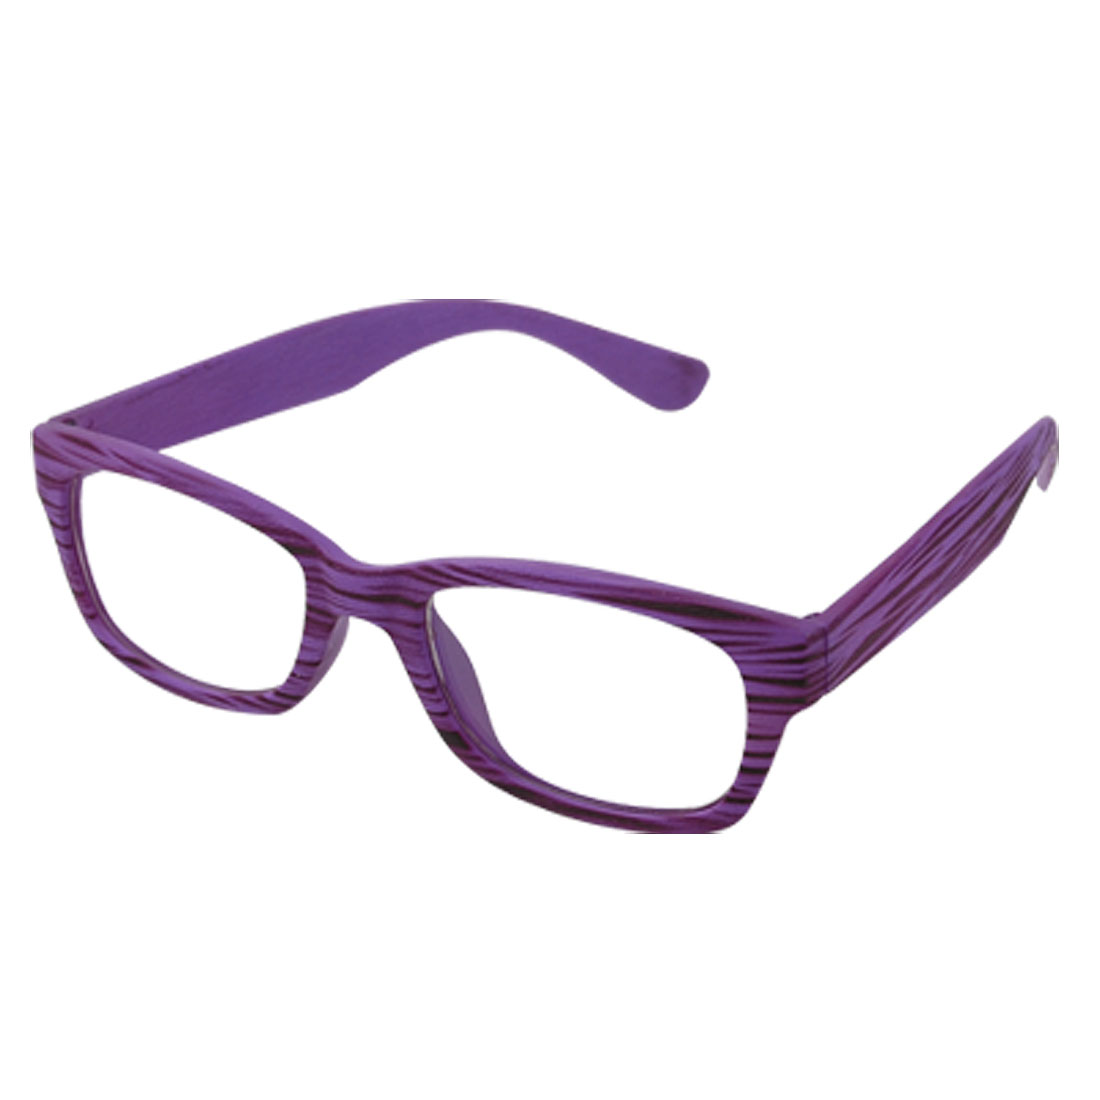 Unisex Clear Lens Purple Frame Eyewear Full Rim Plain Glasses